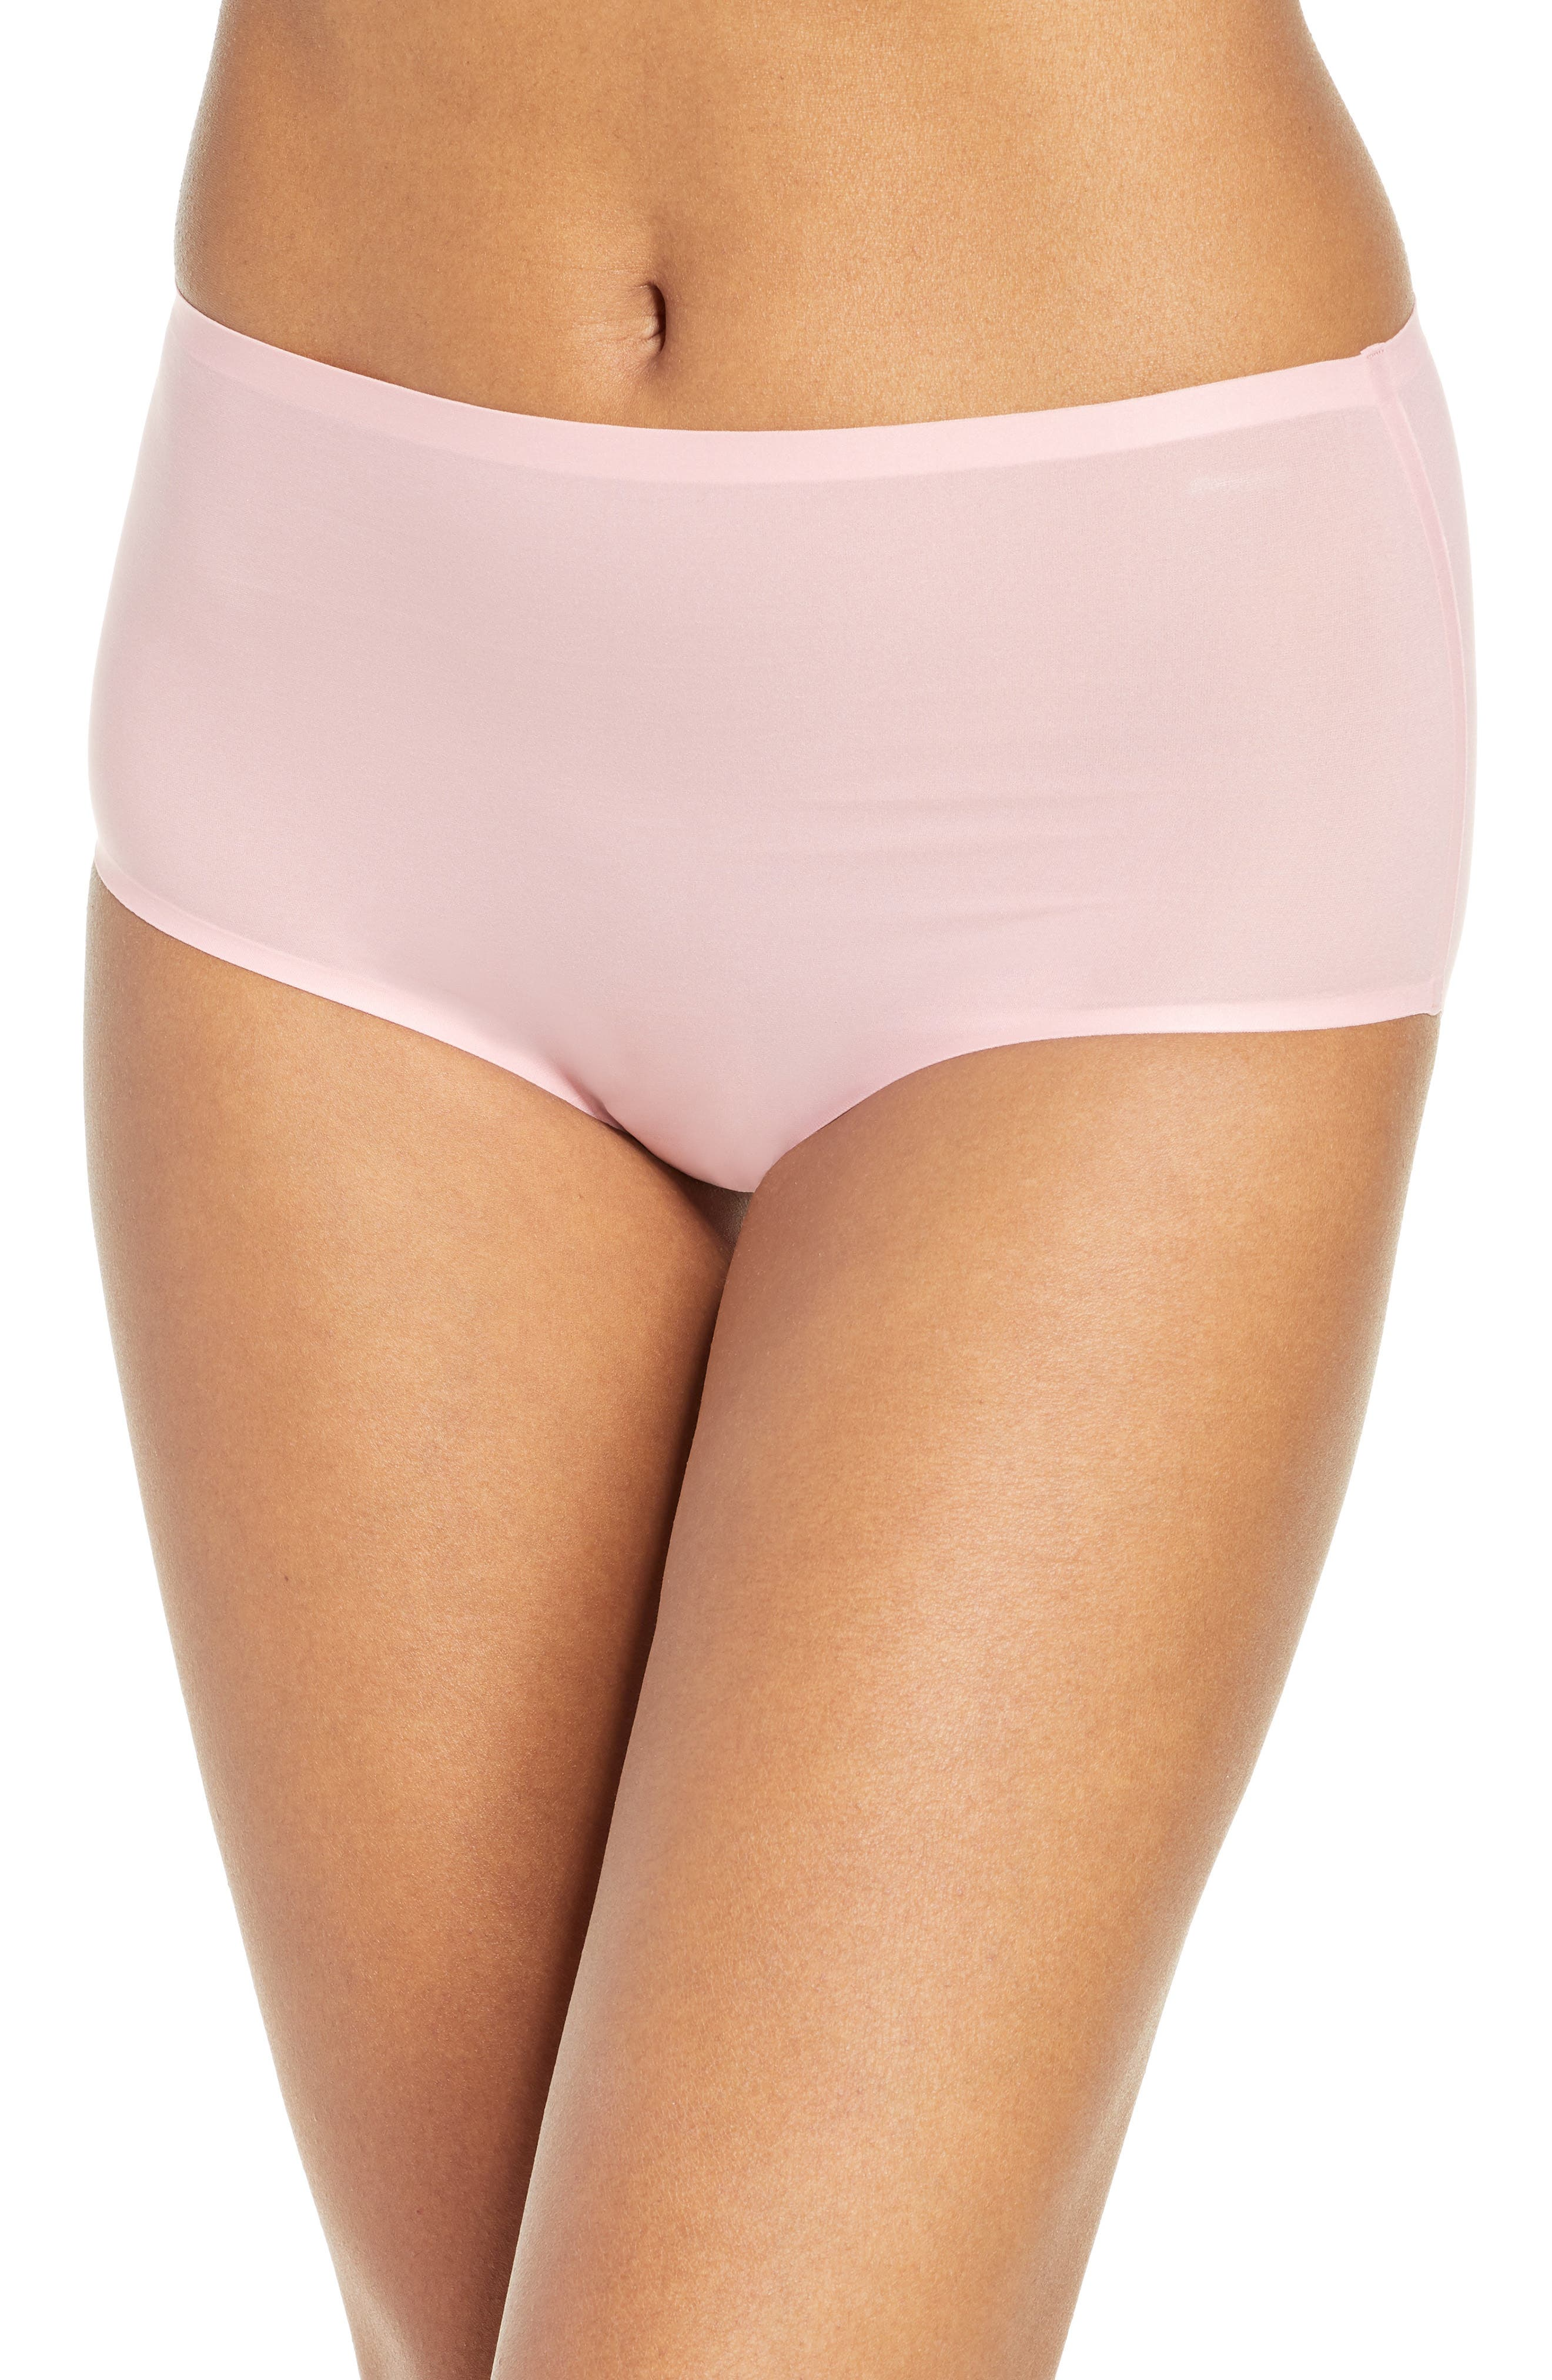 Chantelle Lingerie Soft Stretch High Waist Seamless Briefs (Any 3 for $48)